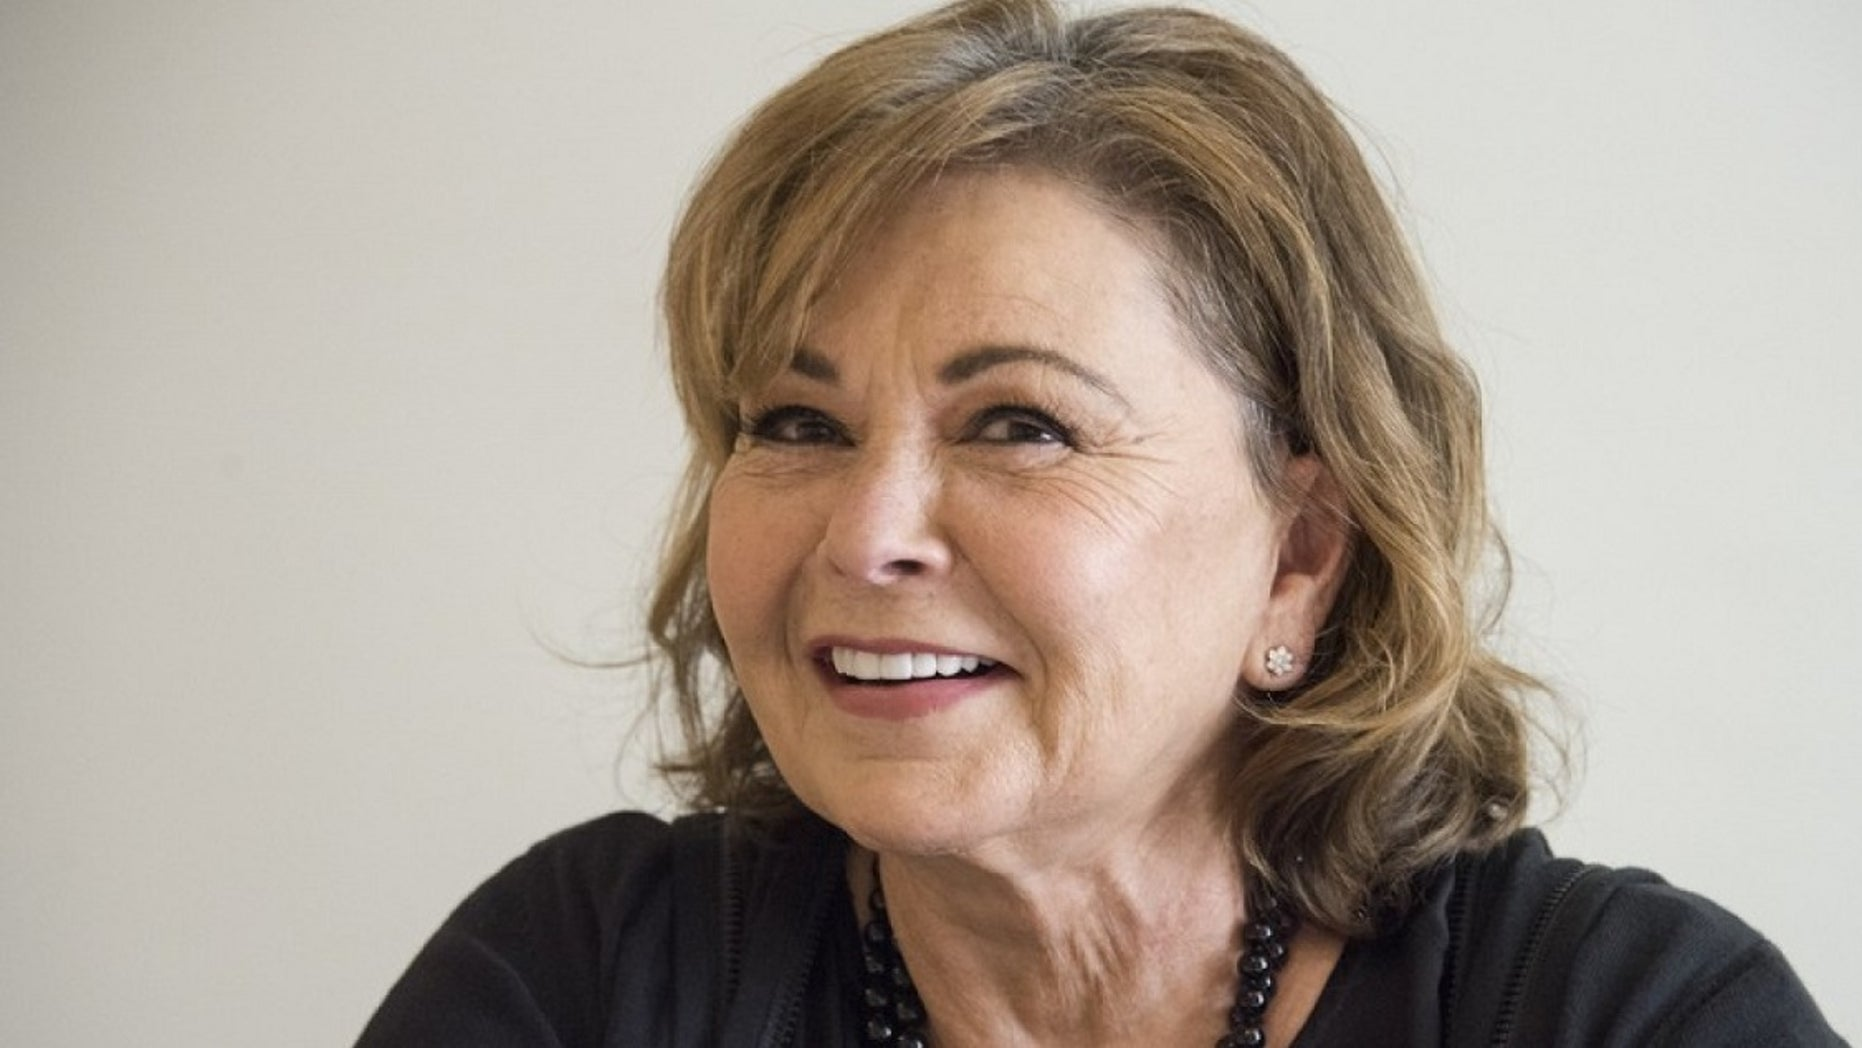 Roseanne Barr says it's fine after rumors of a spread of health problems through social networks.